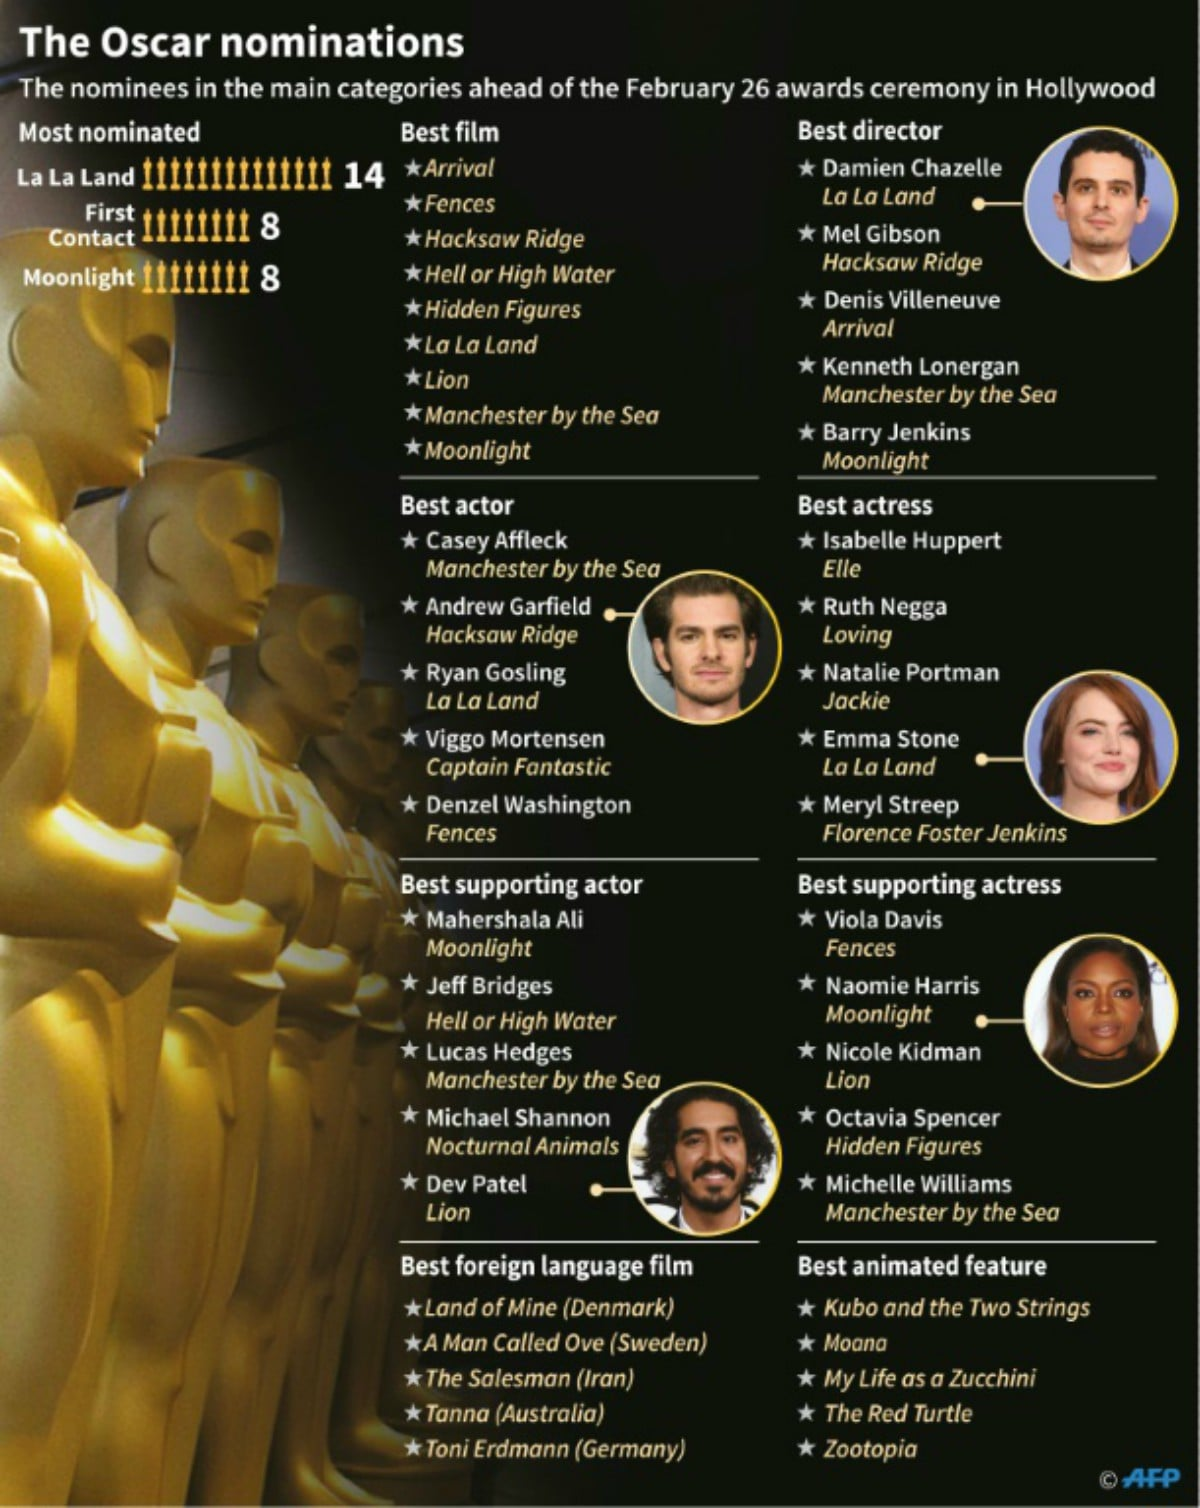 Oscars nominations for 2017